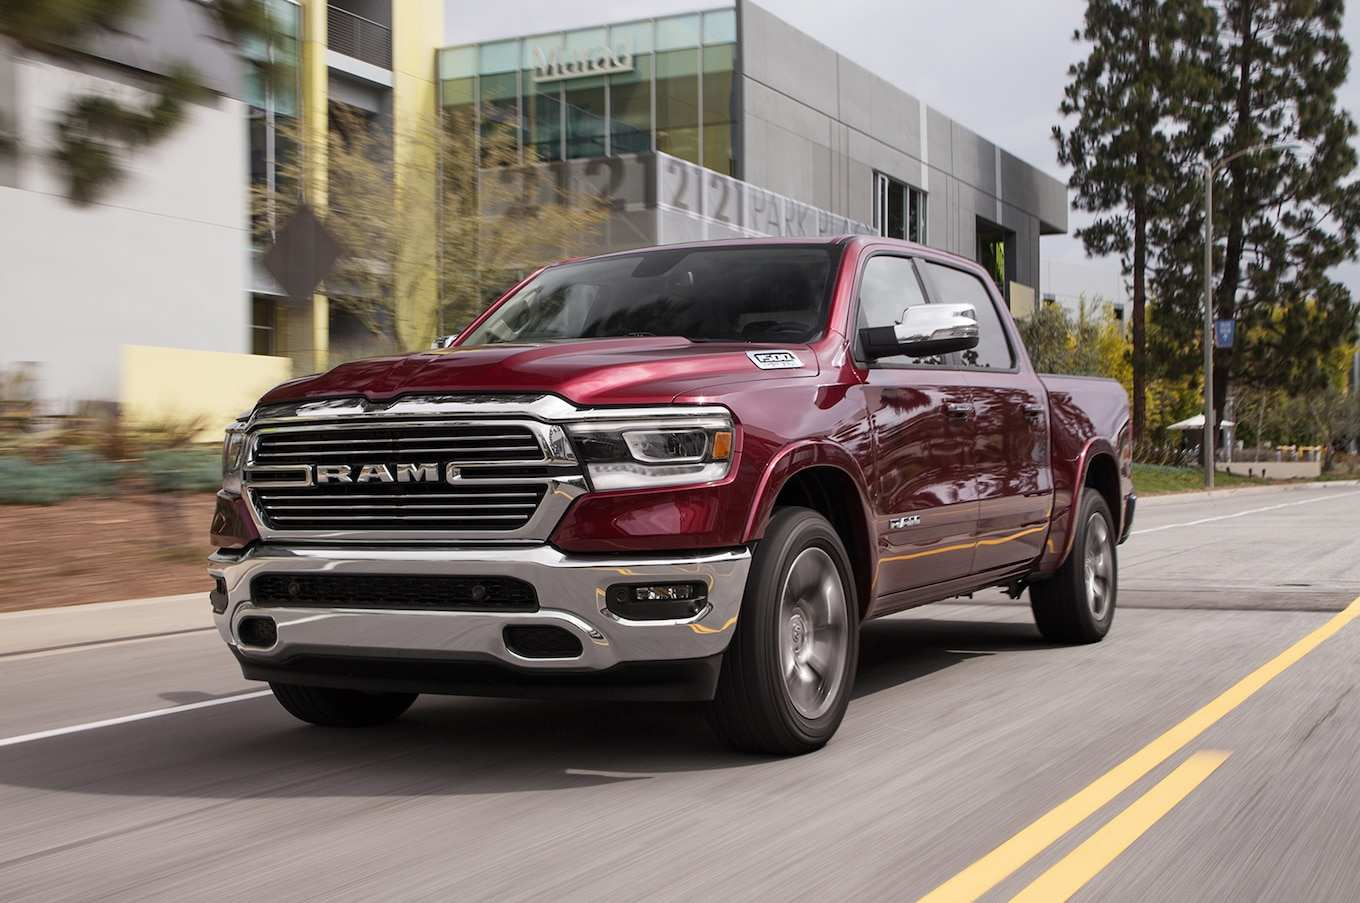 91 Concept of New Dodge 2019 Laramie Longhorn Specs Rumors by New Dodge 2019 Laramie Longhorn Specs